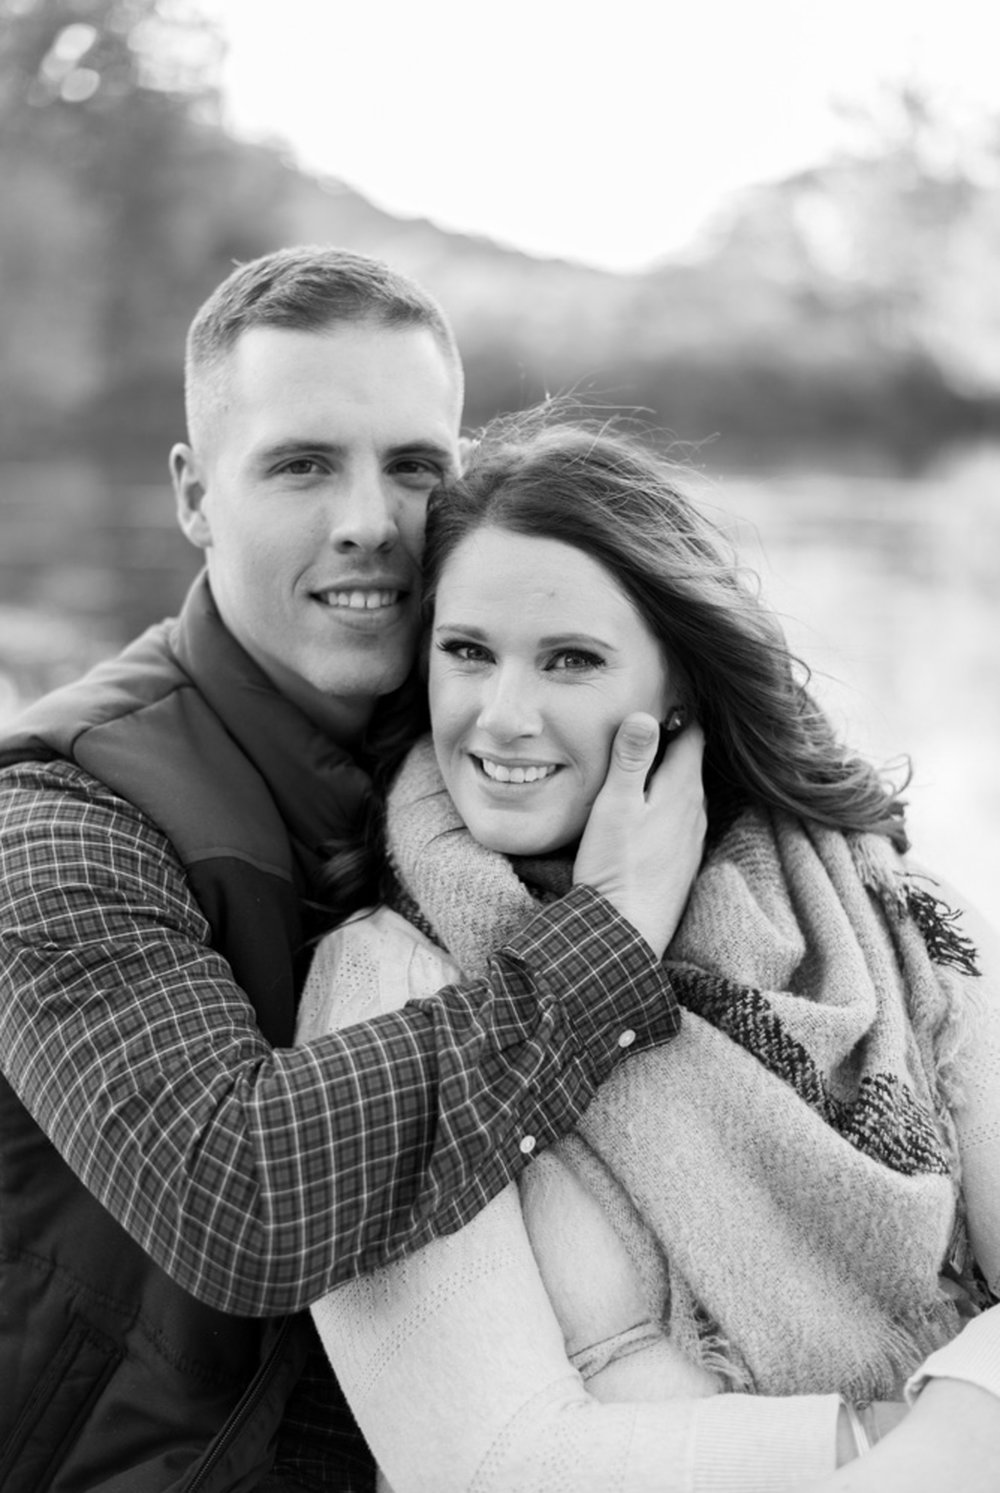 virginia_Engagement_session_Football_Lynchburg_VA_Wedding_Photographer (1).jpg